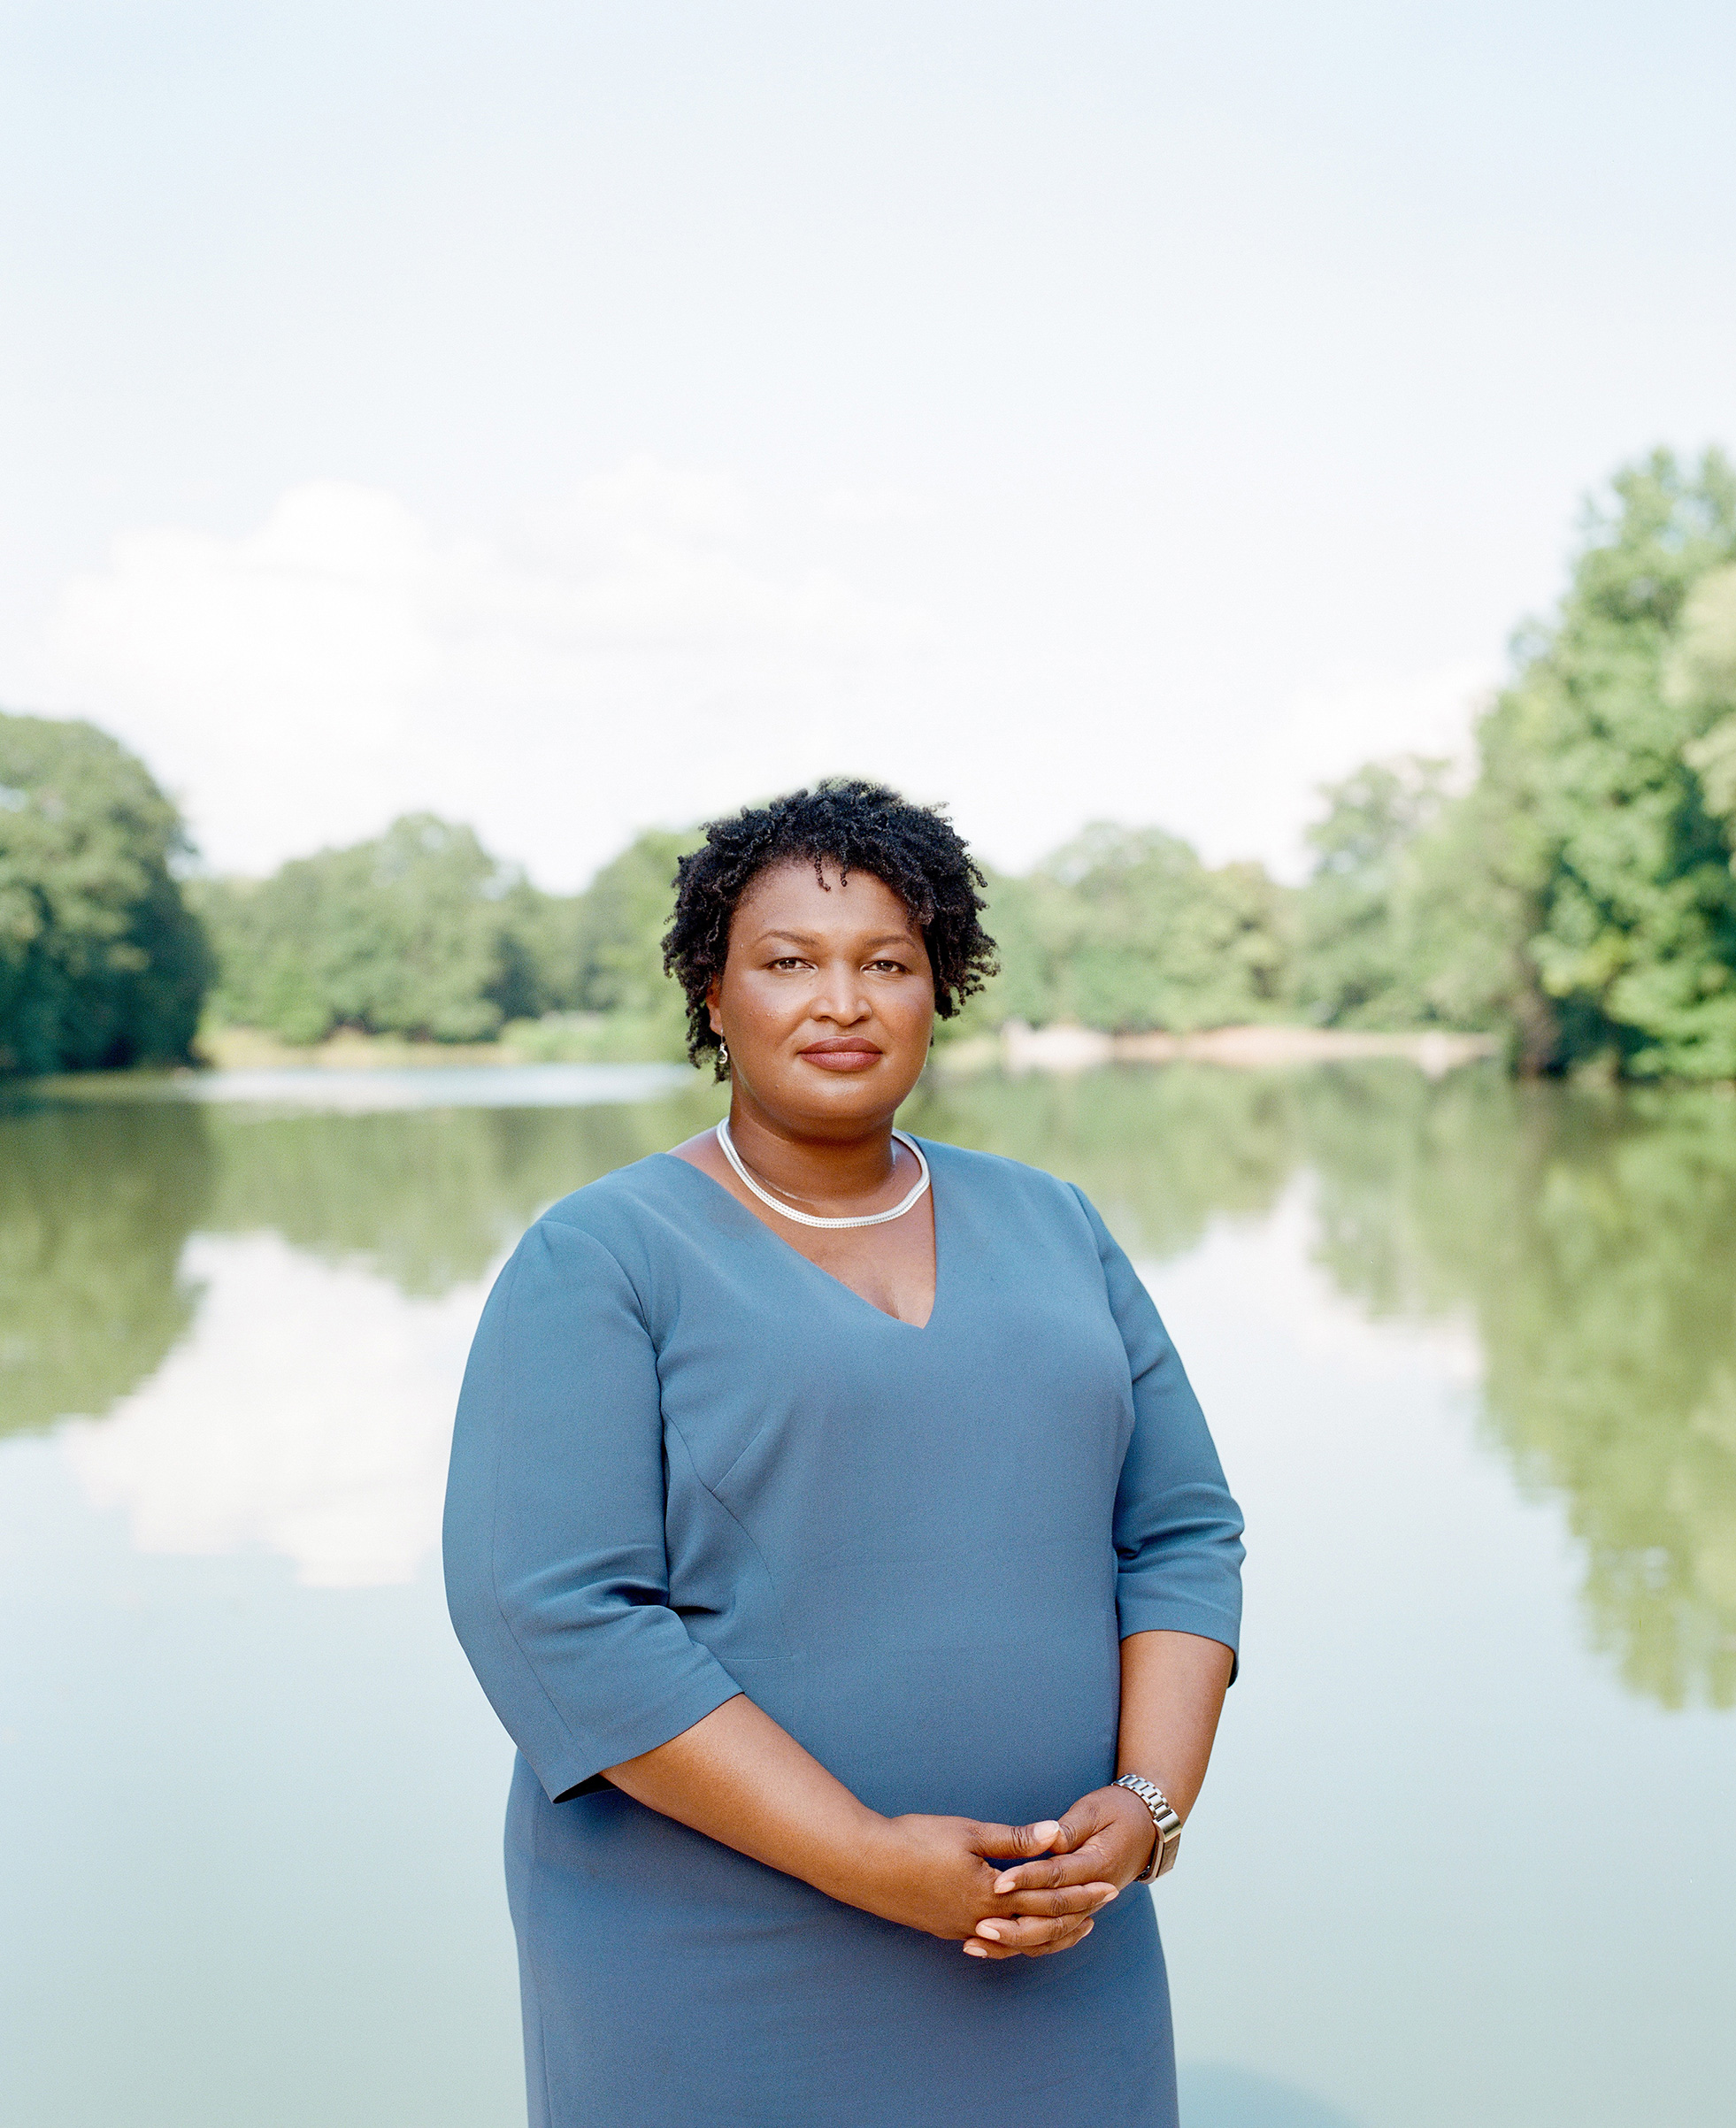 If she wins, Abrams will be the first black female governor in U.S.history